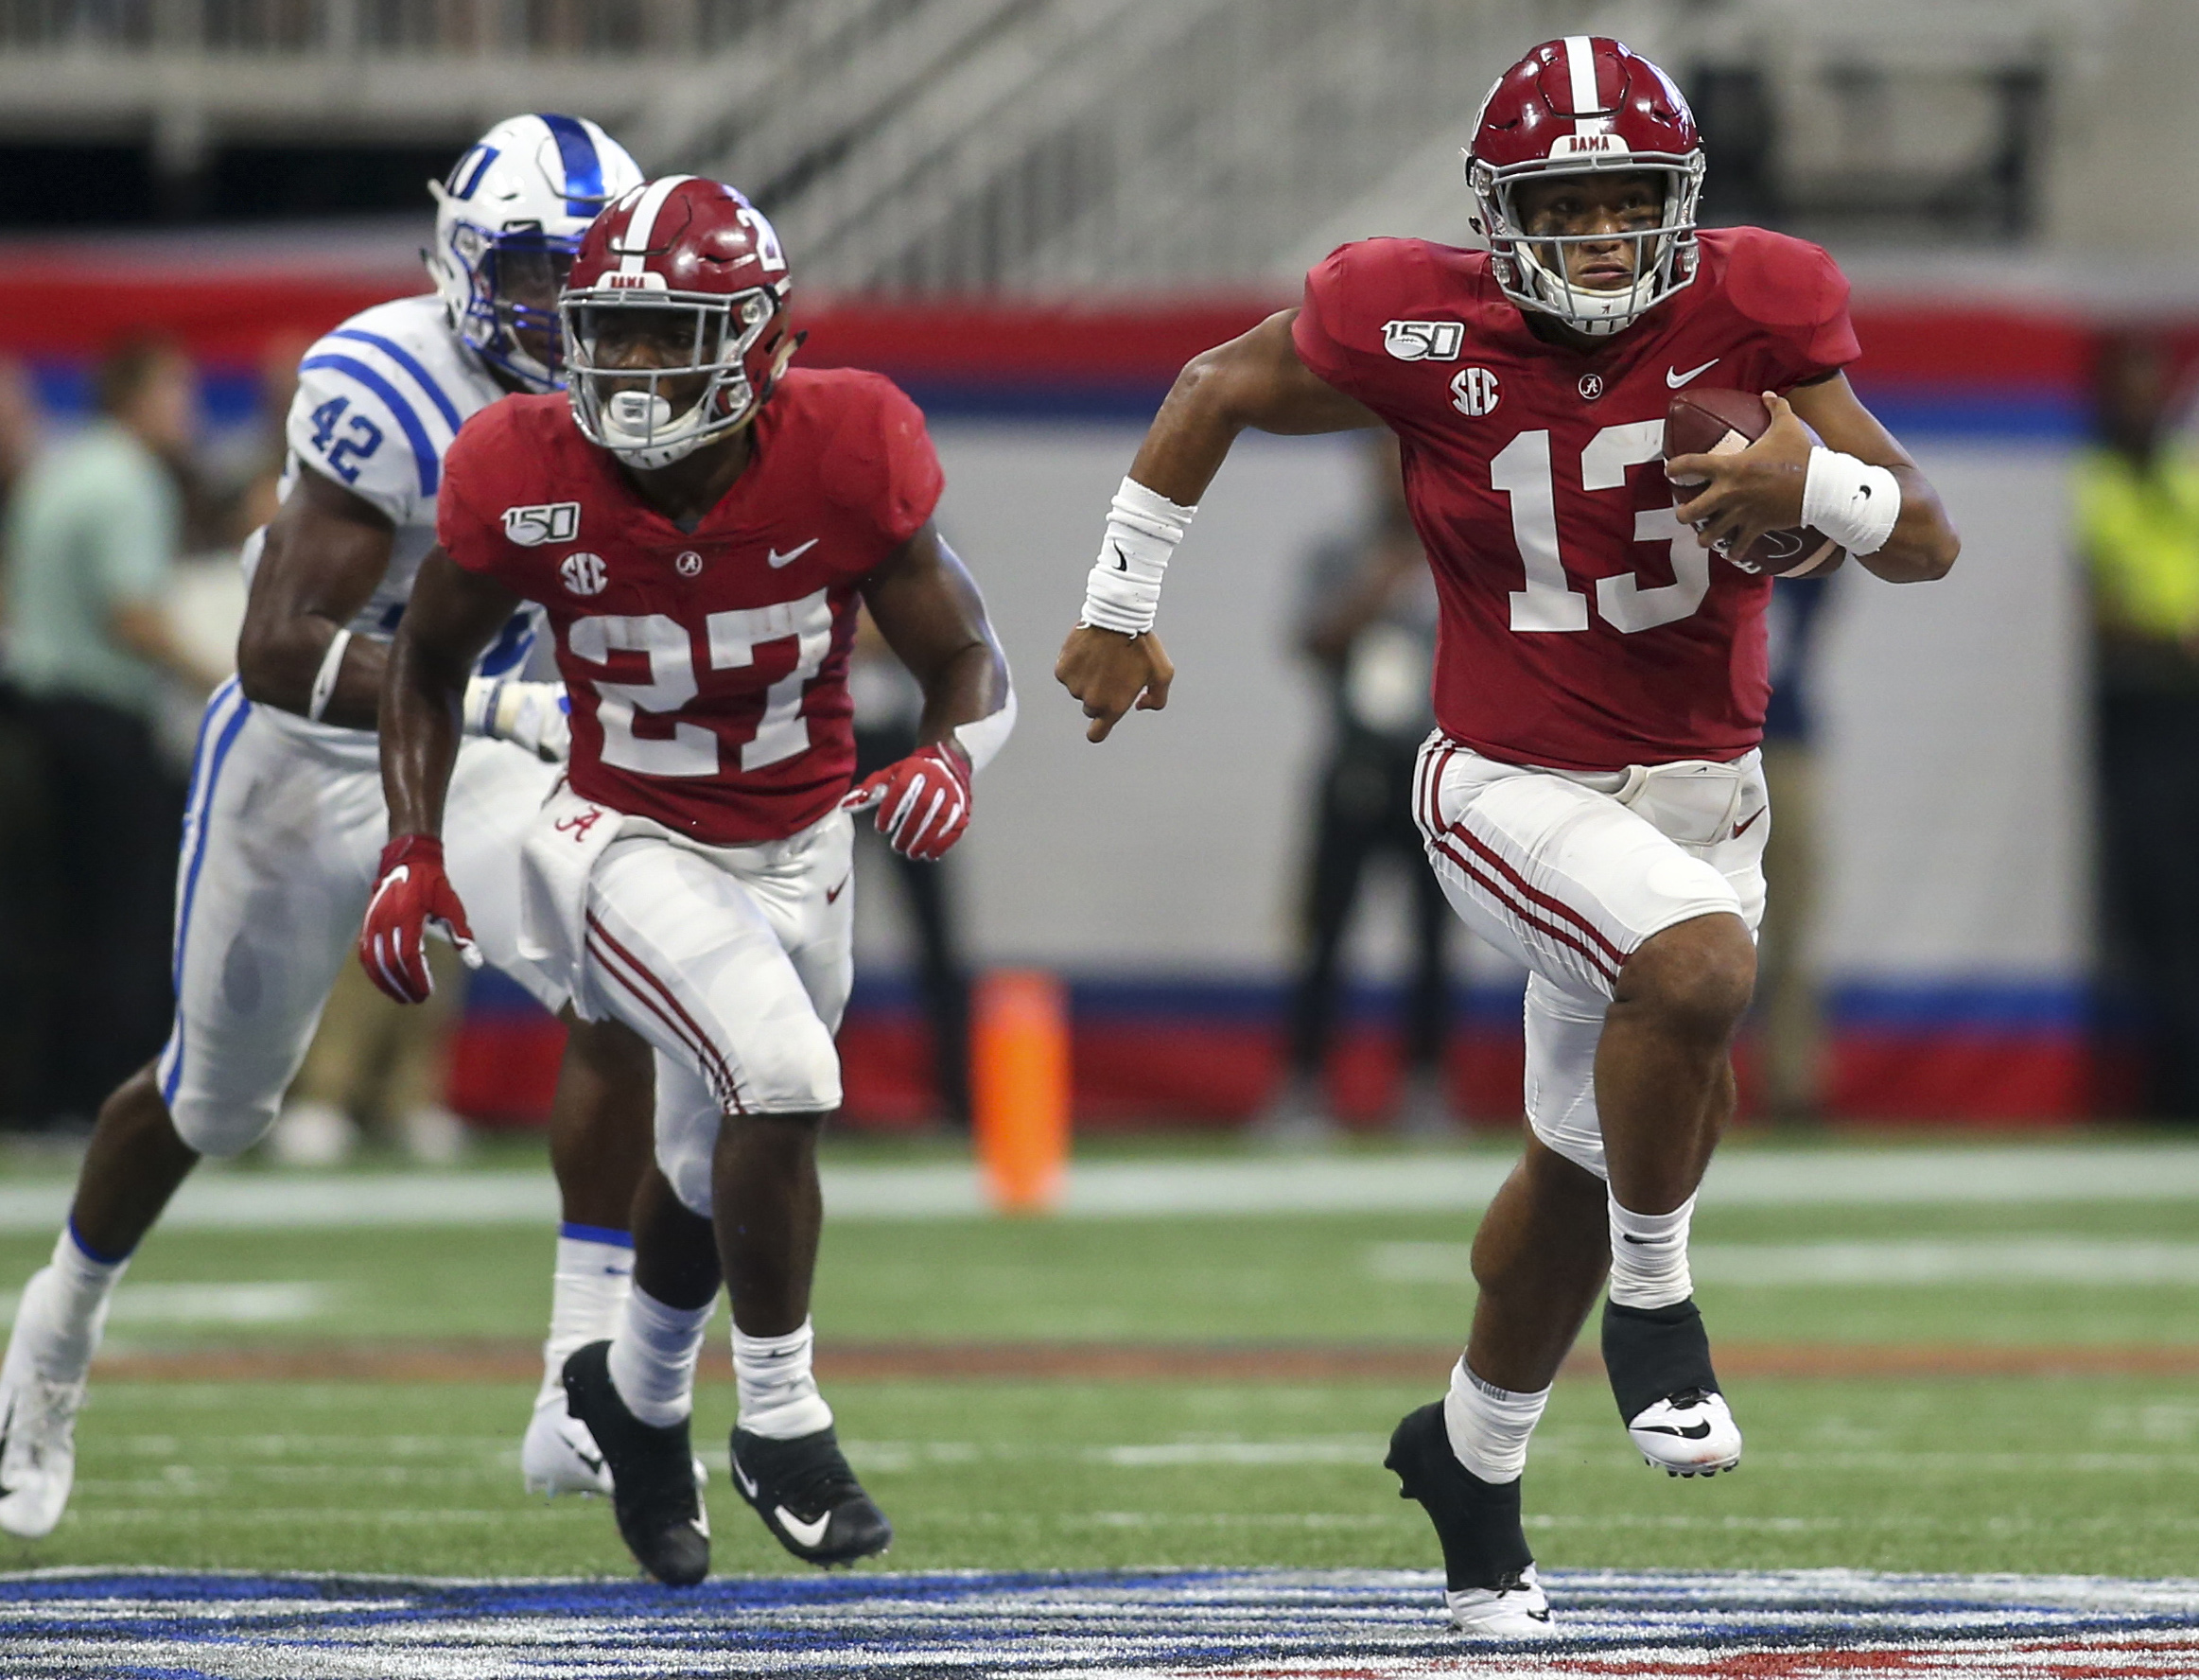 2019 Heisman Trophy Tracker: Breaking Down Stats of Tua Tagovailoa, Trevor Lawrence and More